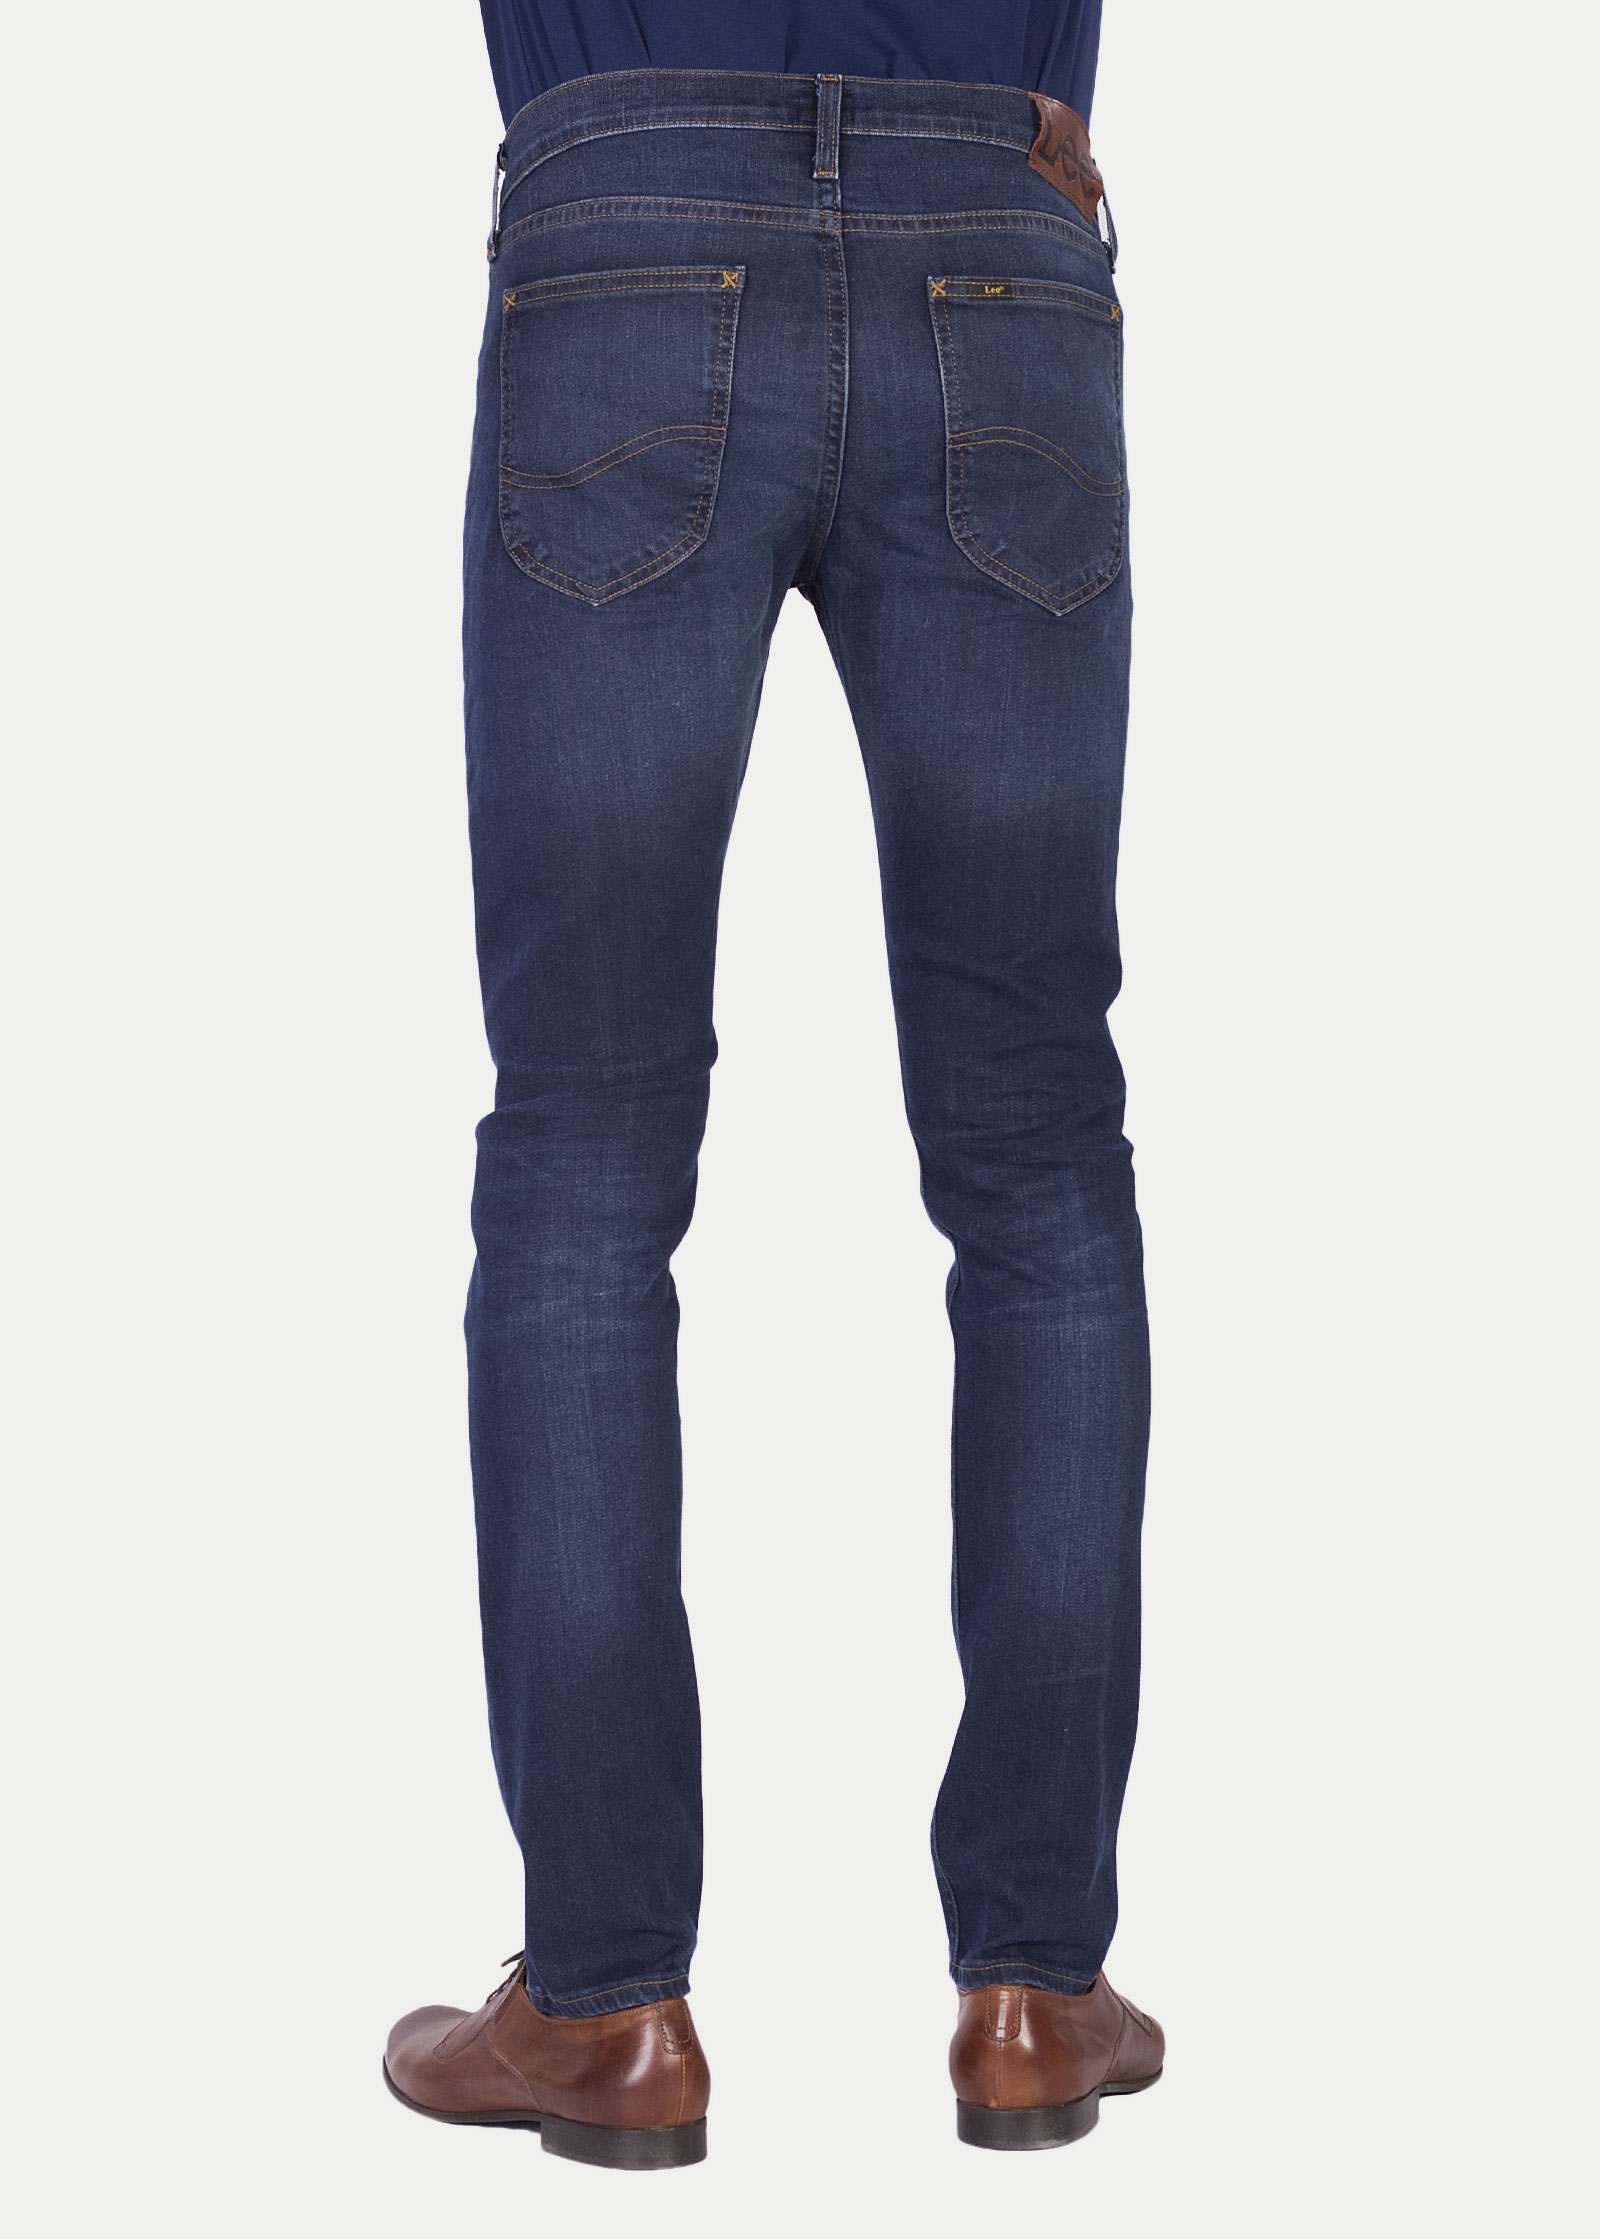 0ee77233 Men's Jeans Lee® Luke - True Authentic (L719GCBY) - Jeans24h - Your ...